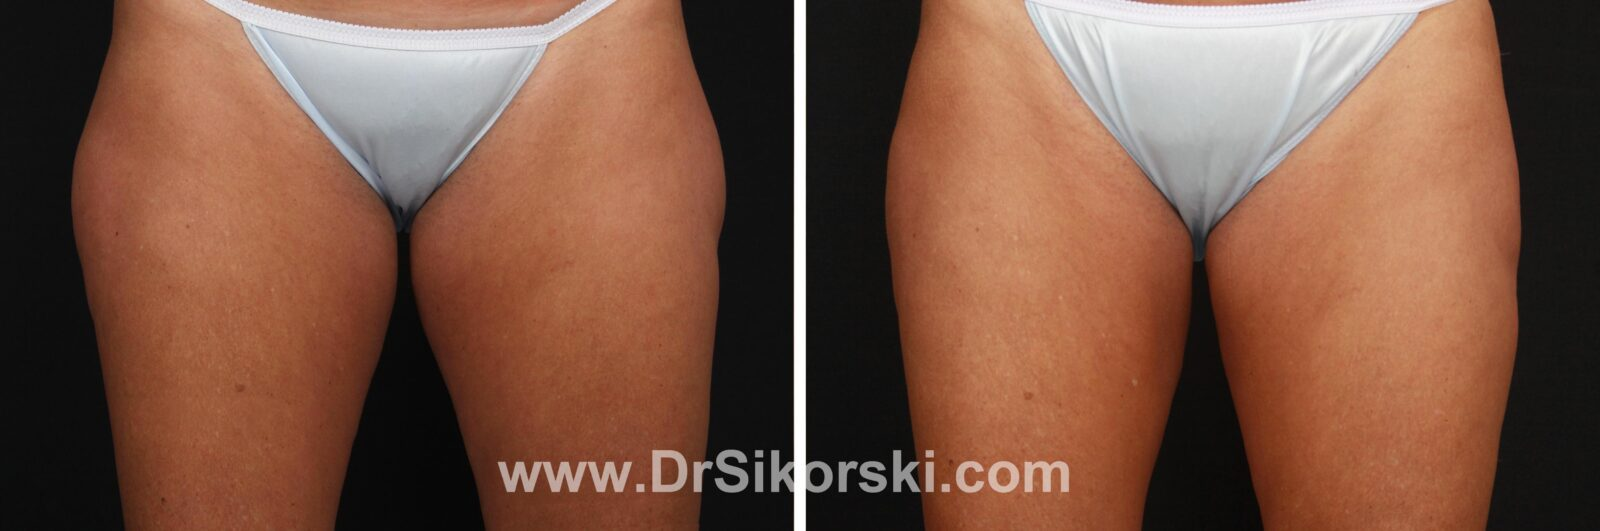 CoolSculpting Mission Viejo Thigh Before and After Patient K